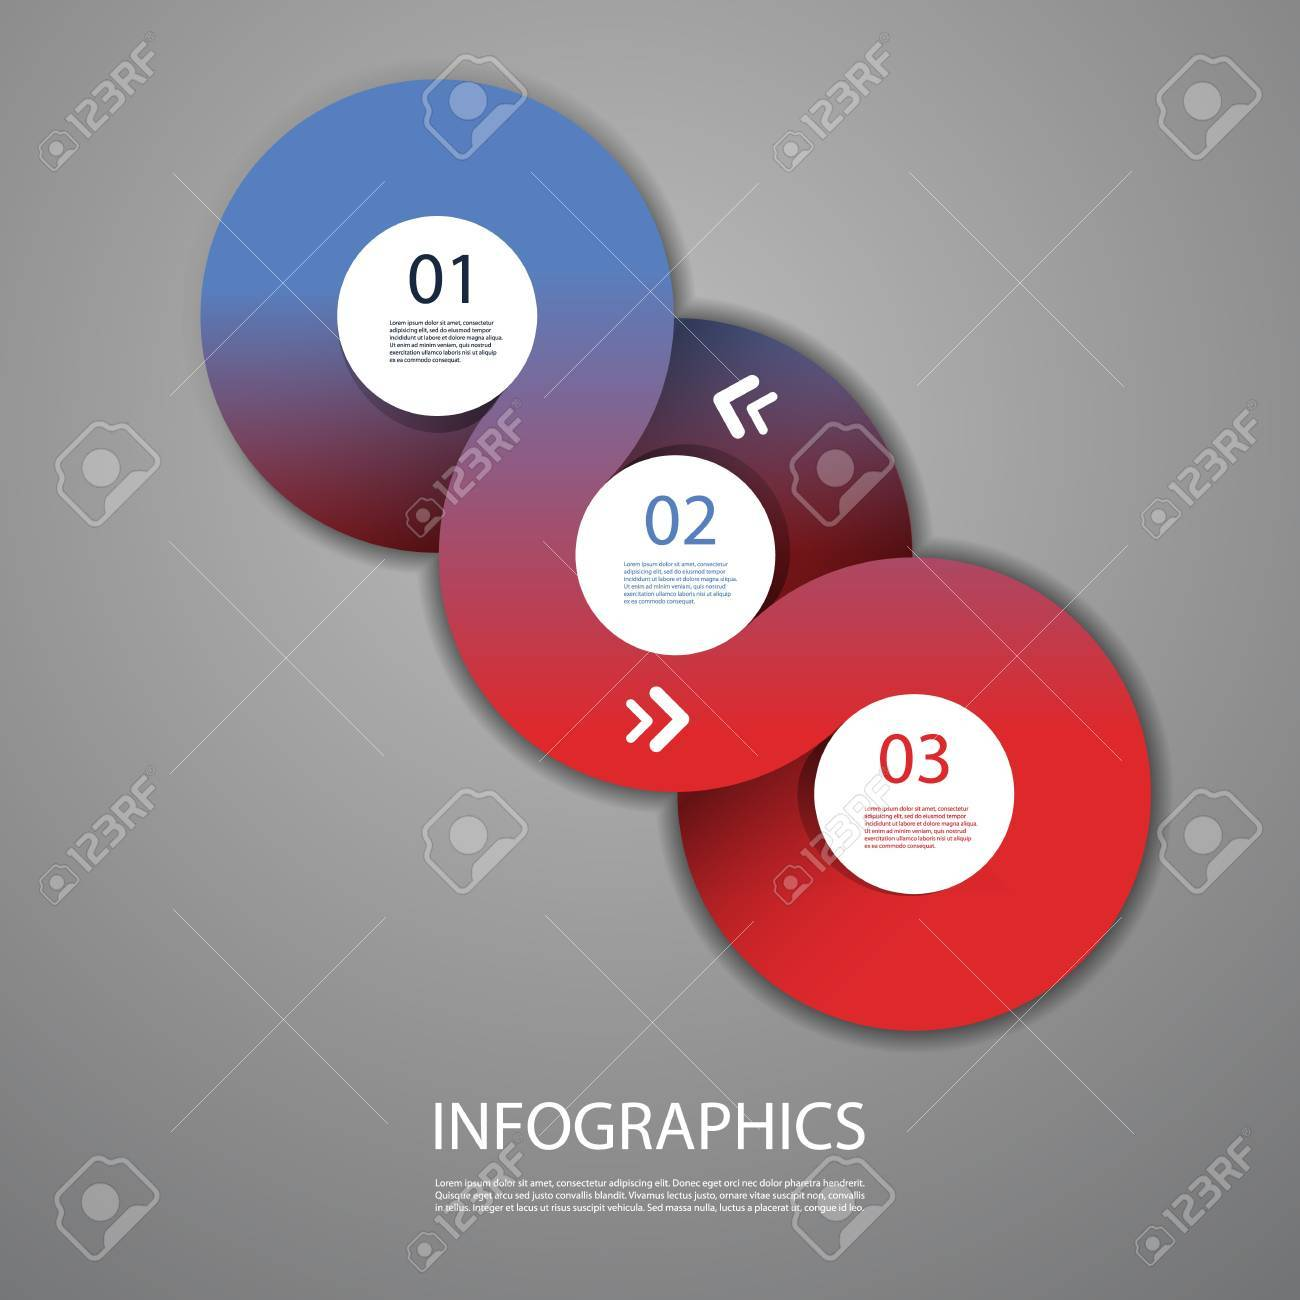 Infographics Cover - Circle Designs with Icons Stock Vector - 18128594